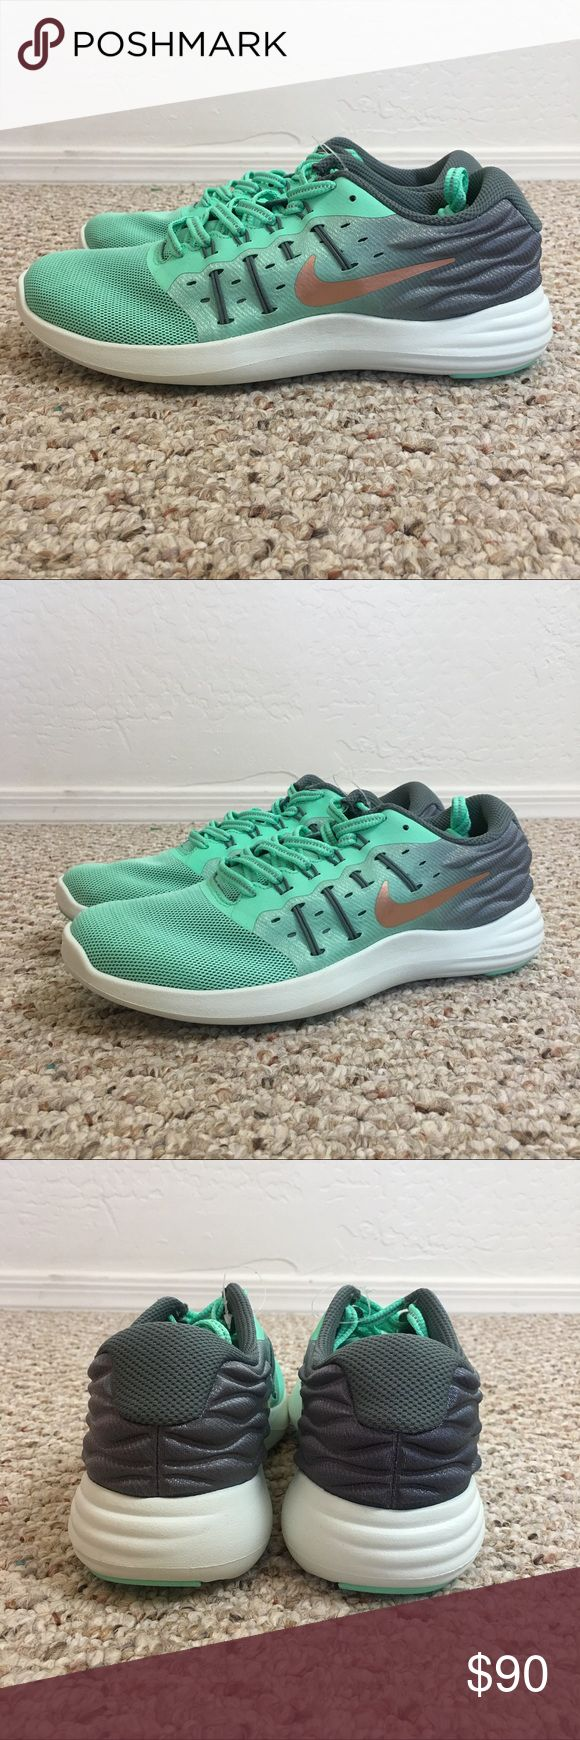 NIKE LUNARSTELOS RUNNING SHOE BRAND NEW WITHOUT BOX   SHOES ONLY  WOMENS NIKE LUNARSTELOS RUNNING SHOE  SIZE 8  SMOKE AND PET FREE HOME Nike Shoes Athletic Shoes